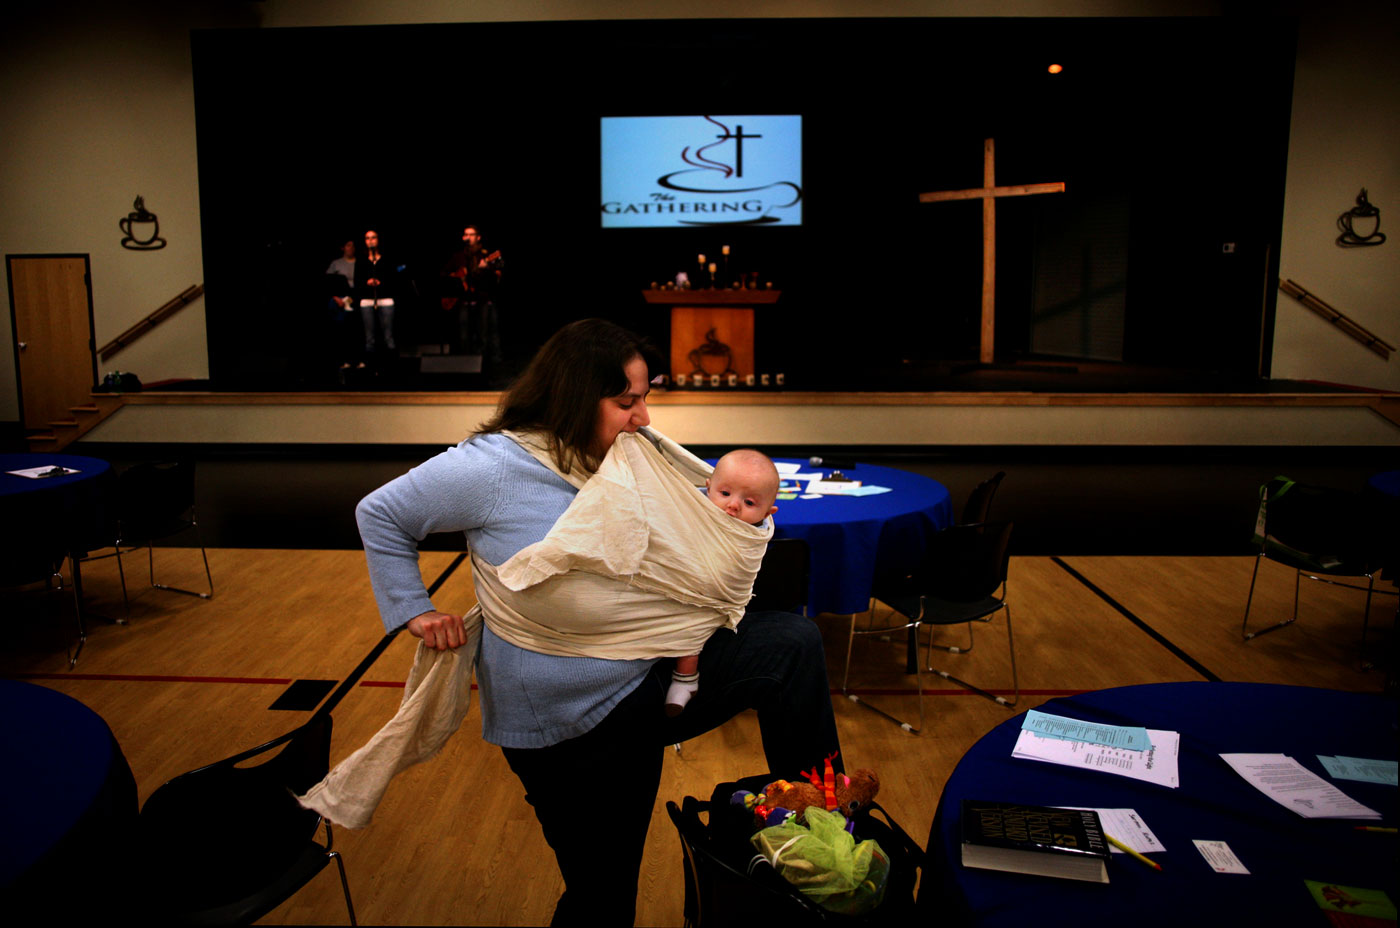 "Stephanie Goetsch clamps the cloth between her teeth and curls her newborn tight.A scattering of circular tables dots the gym floor and four basketball goals frame the sidelines. It's almost time for church.""We started the church in September and he (Luke) was born in October,"" Goetsch says. ""He's the first lifetime member. In fact, he's automatically a member because we are.""The 26-year-old attends The Gathering United Methodist Church, a burgeoning congregation that meets in the gym of Courthouse Community United Methodist Church in Virginia Beach. It holds two services a week and targets young adults.{quote}We like it because it's more family oriented,"" Goetsch says. ""Because it's a new church, we have more input into how things are."""